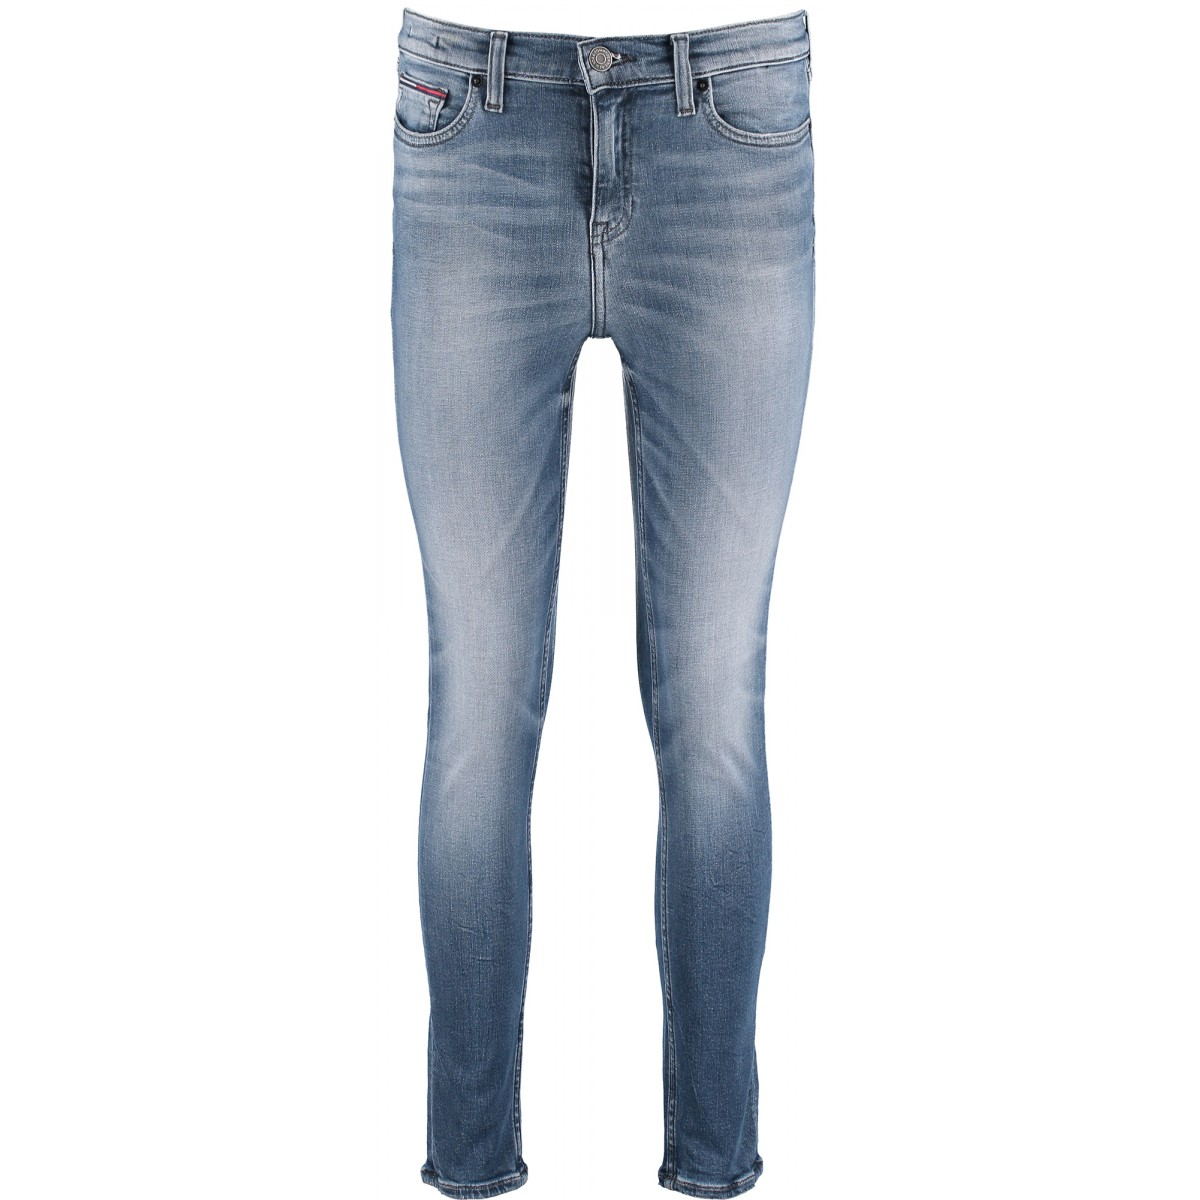 Tommy Hilfiger Jeans dames jeans | PIET ZOOMERS